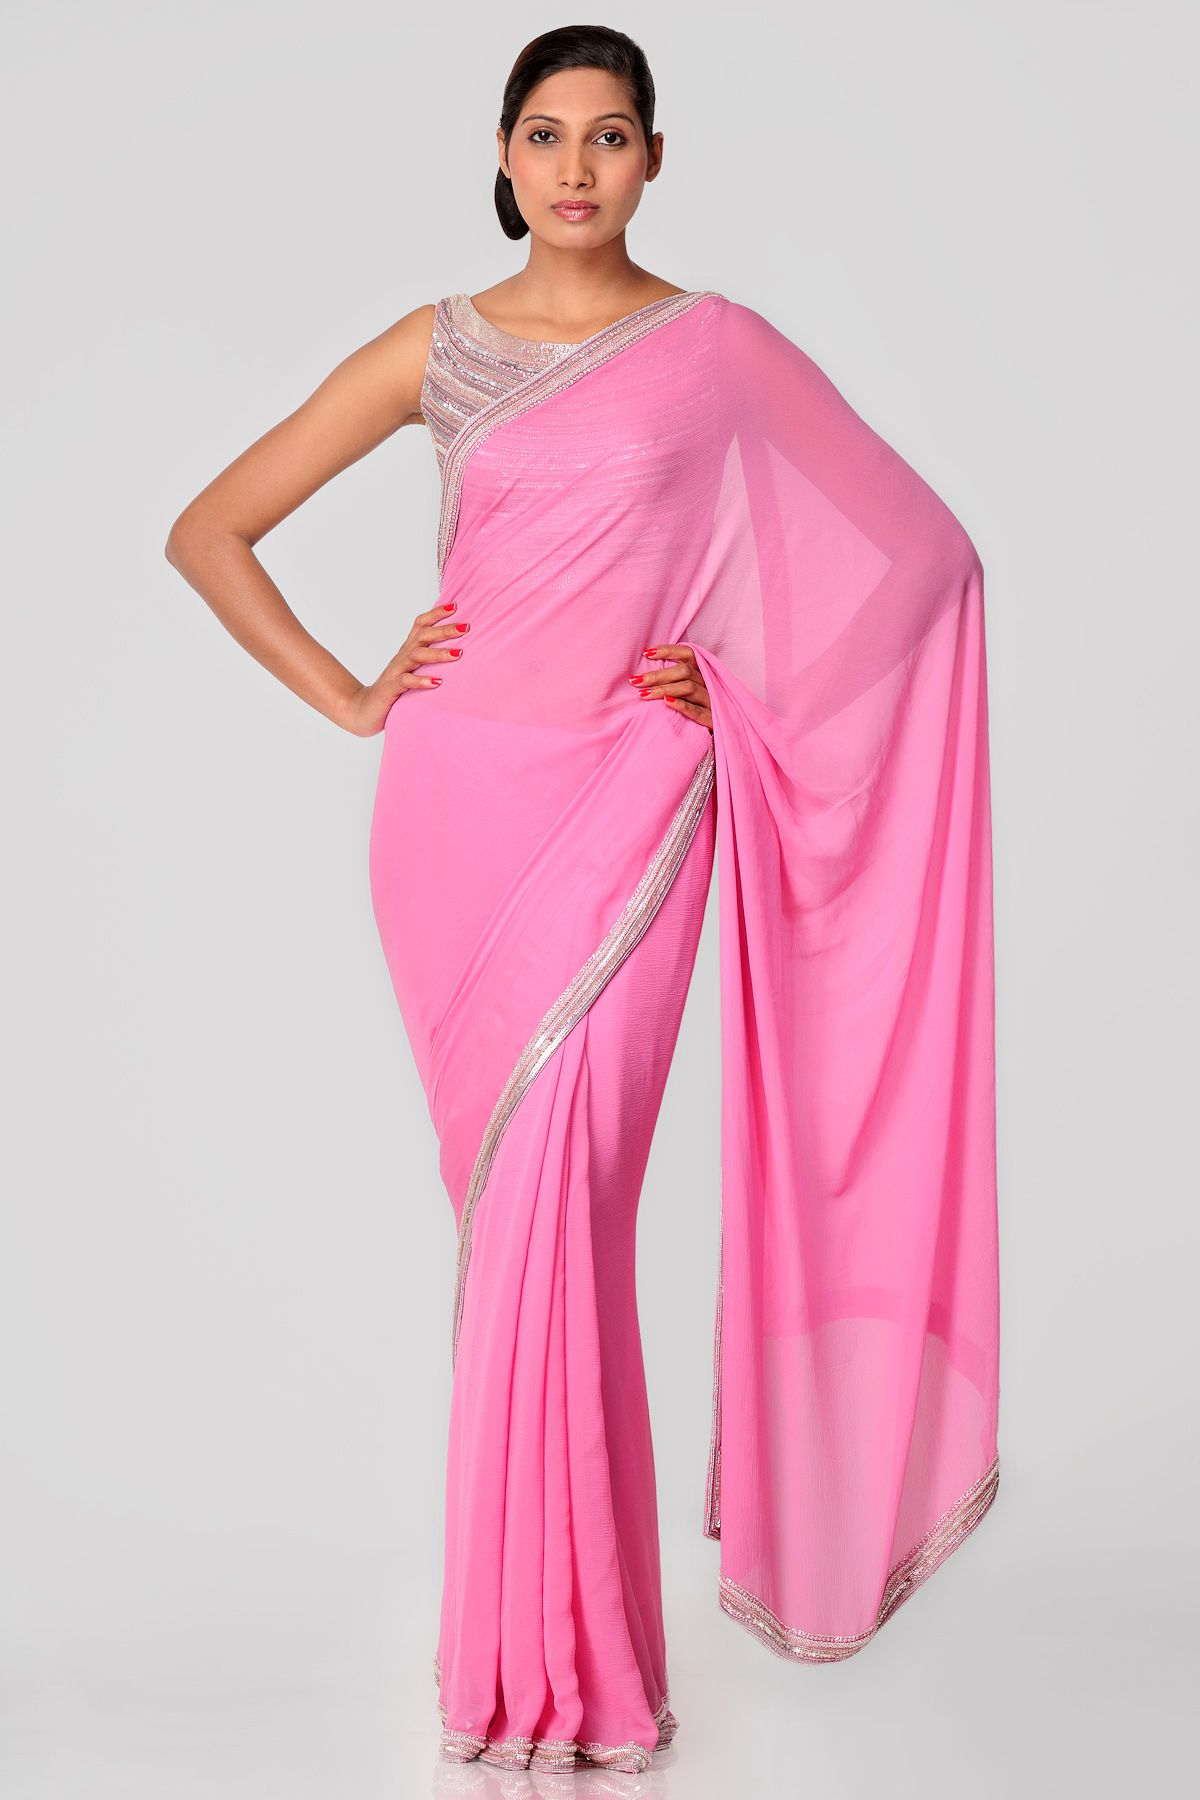 d26fb515378909 Mithra Baby Pink Saree, Jute Sarees, Pink Green Wedding, Bridesmaid Saree,  Indian